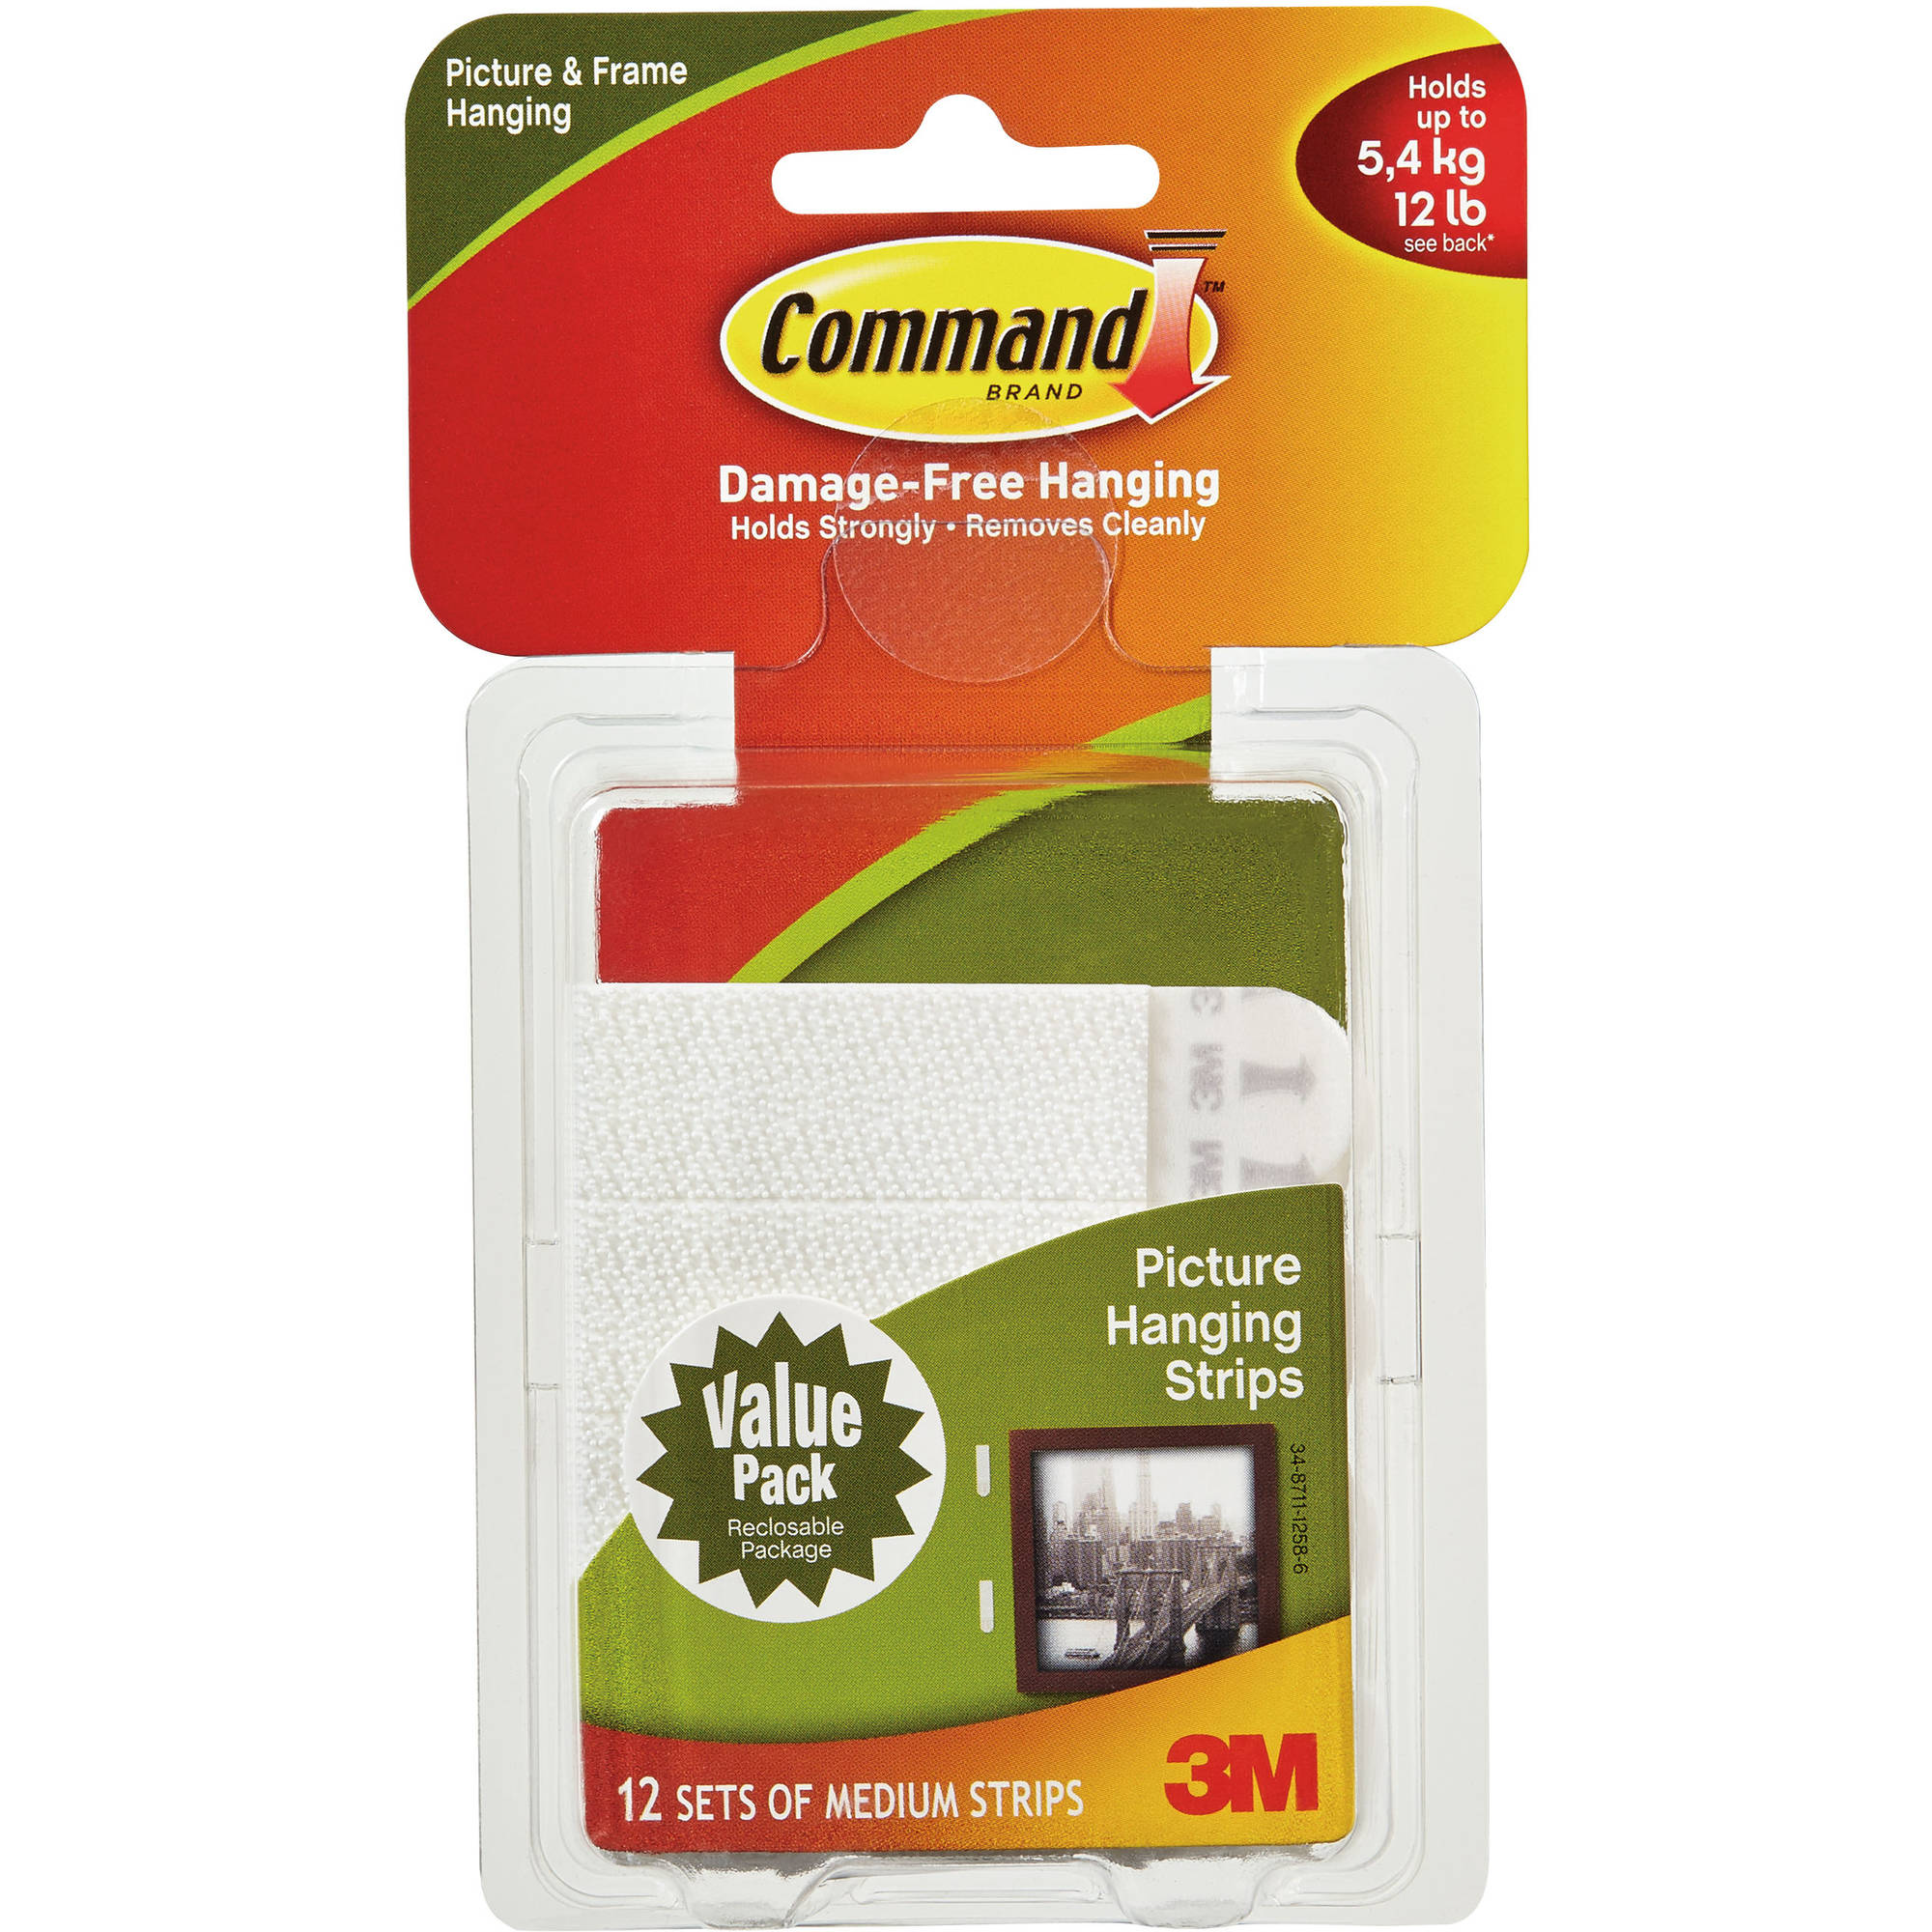 Command Medium Picture Hanging Strips Value Pack, White, 12 Sets of Strips/Pack